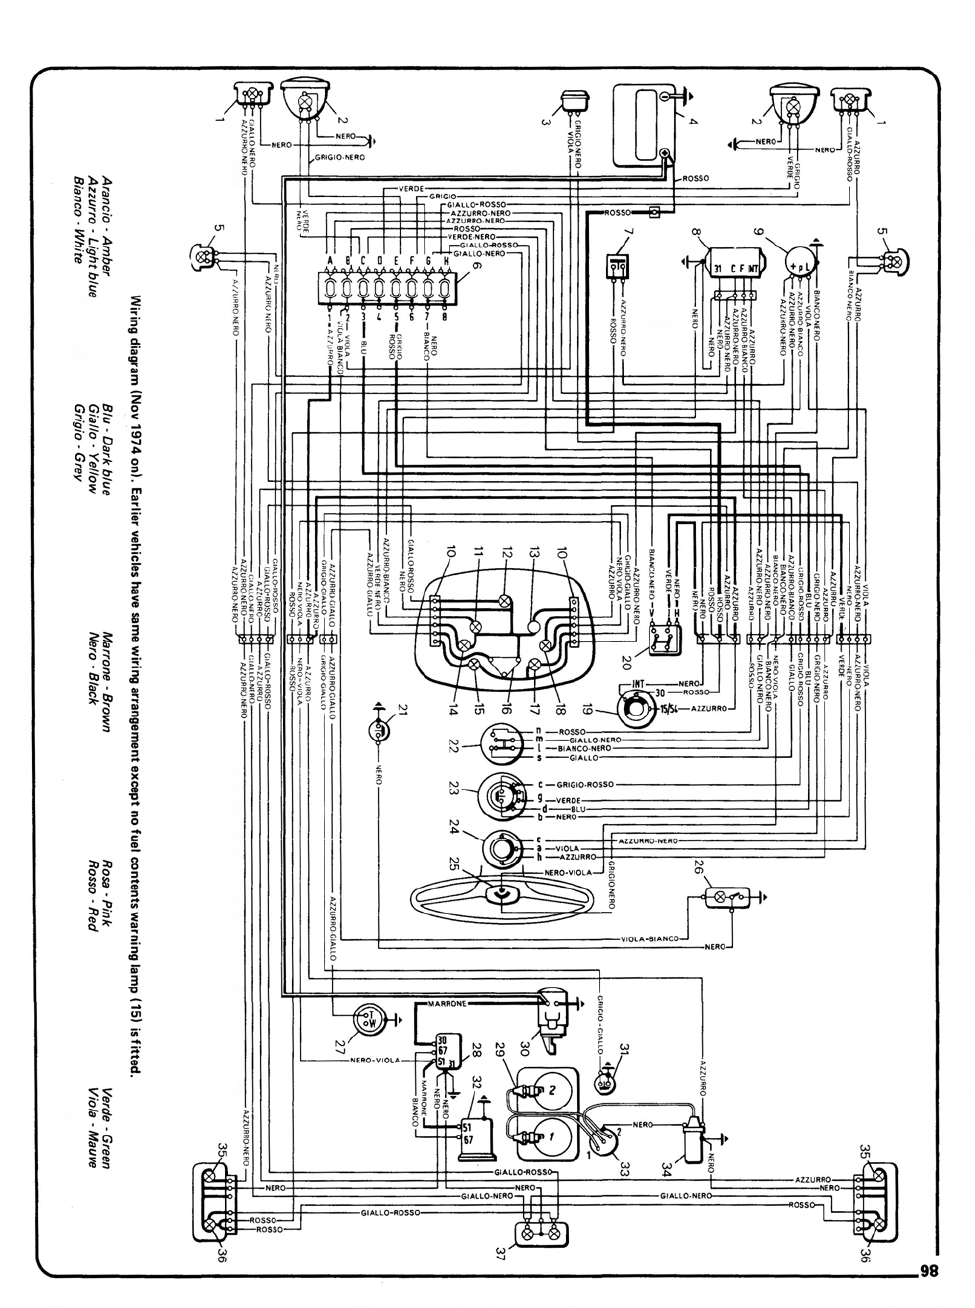 fiat generator wiring diagram  fiat  auto parts catalog